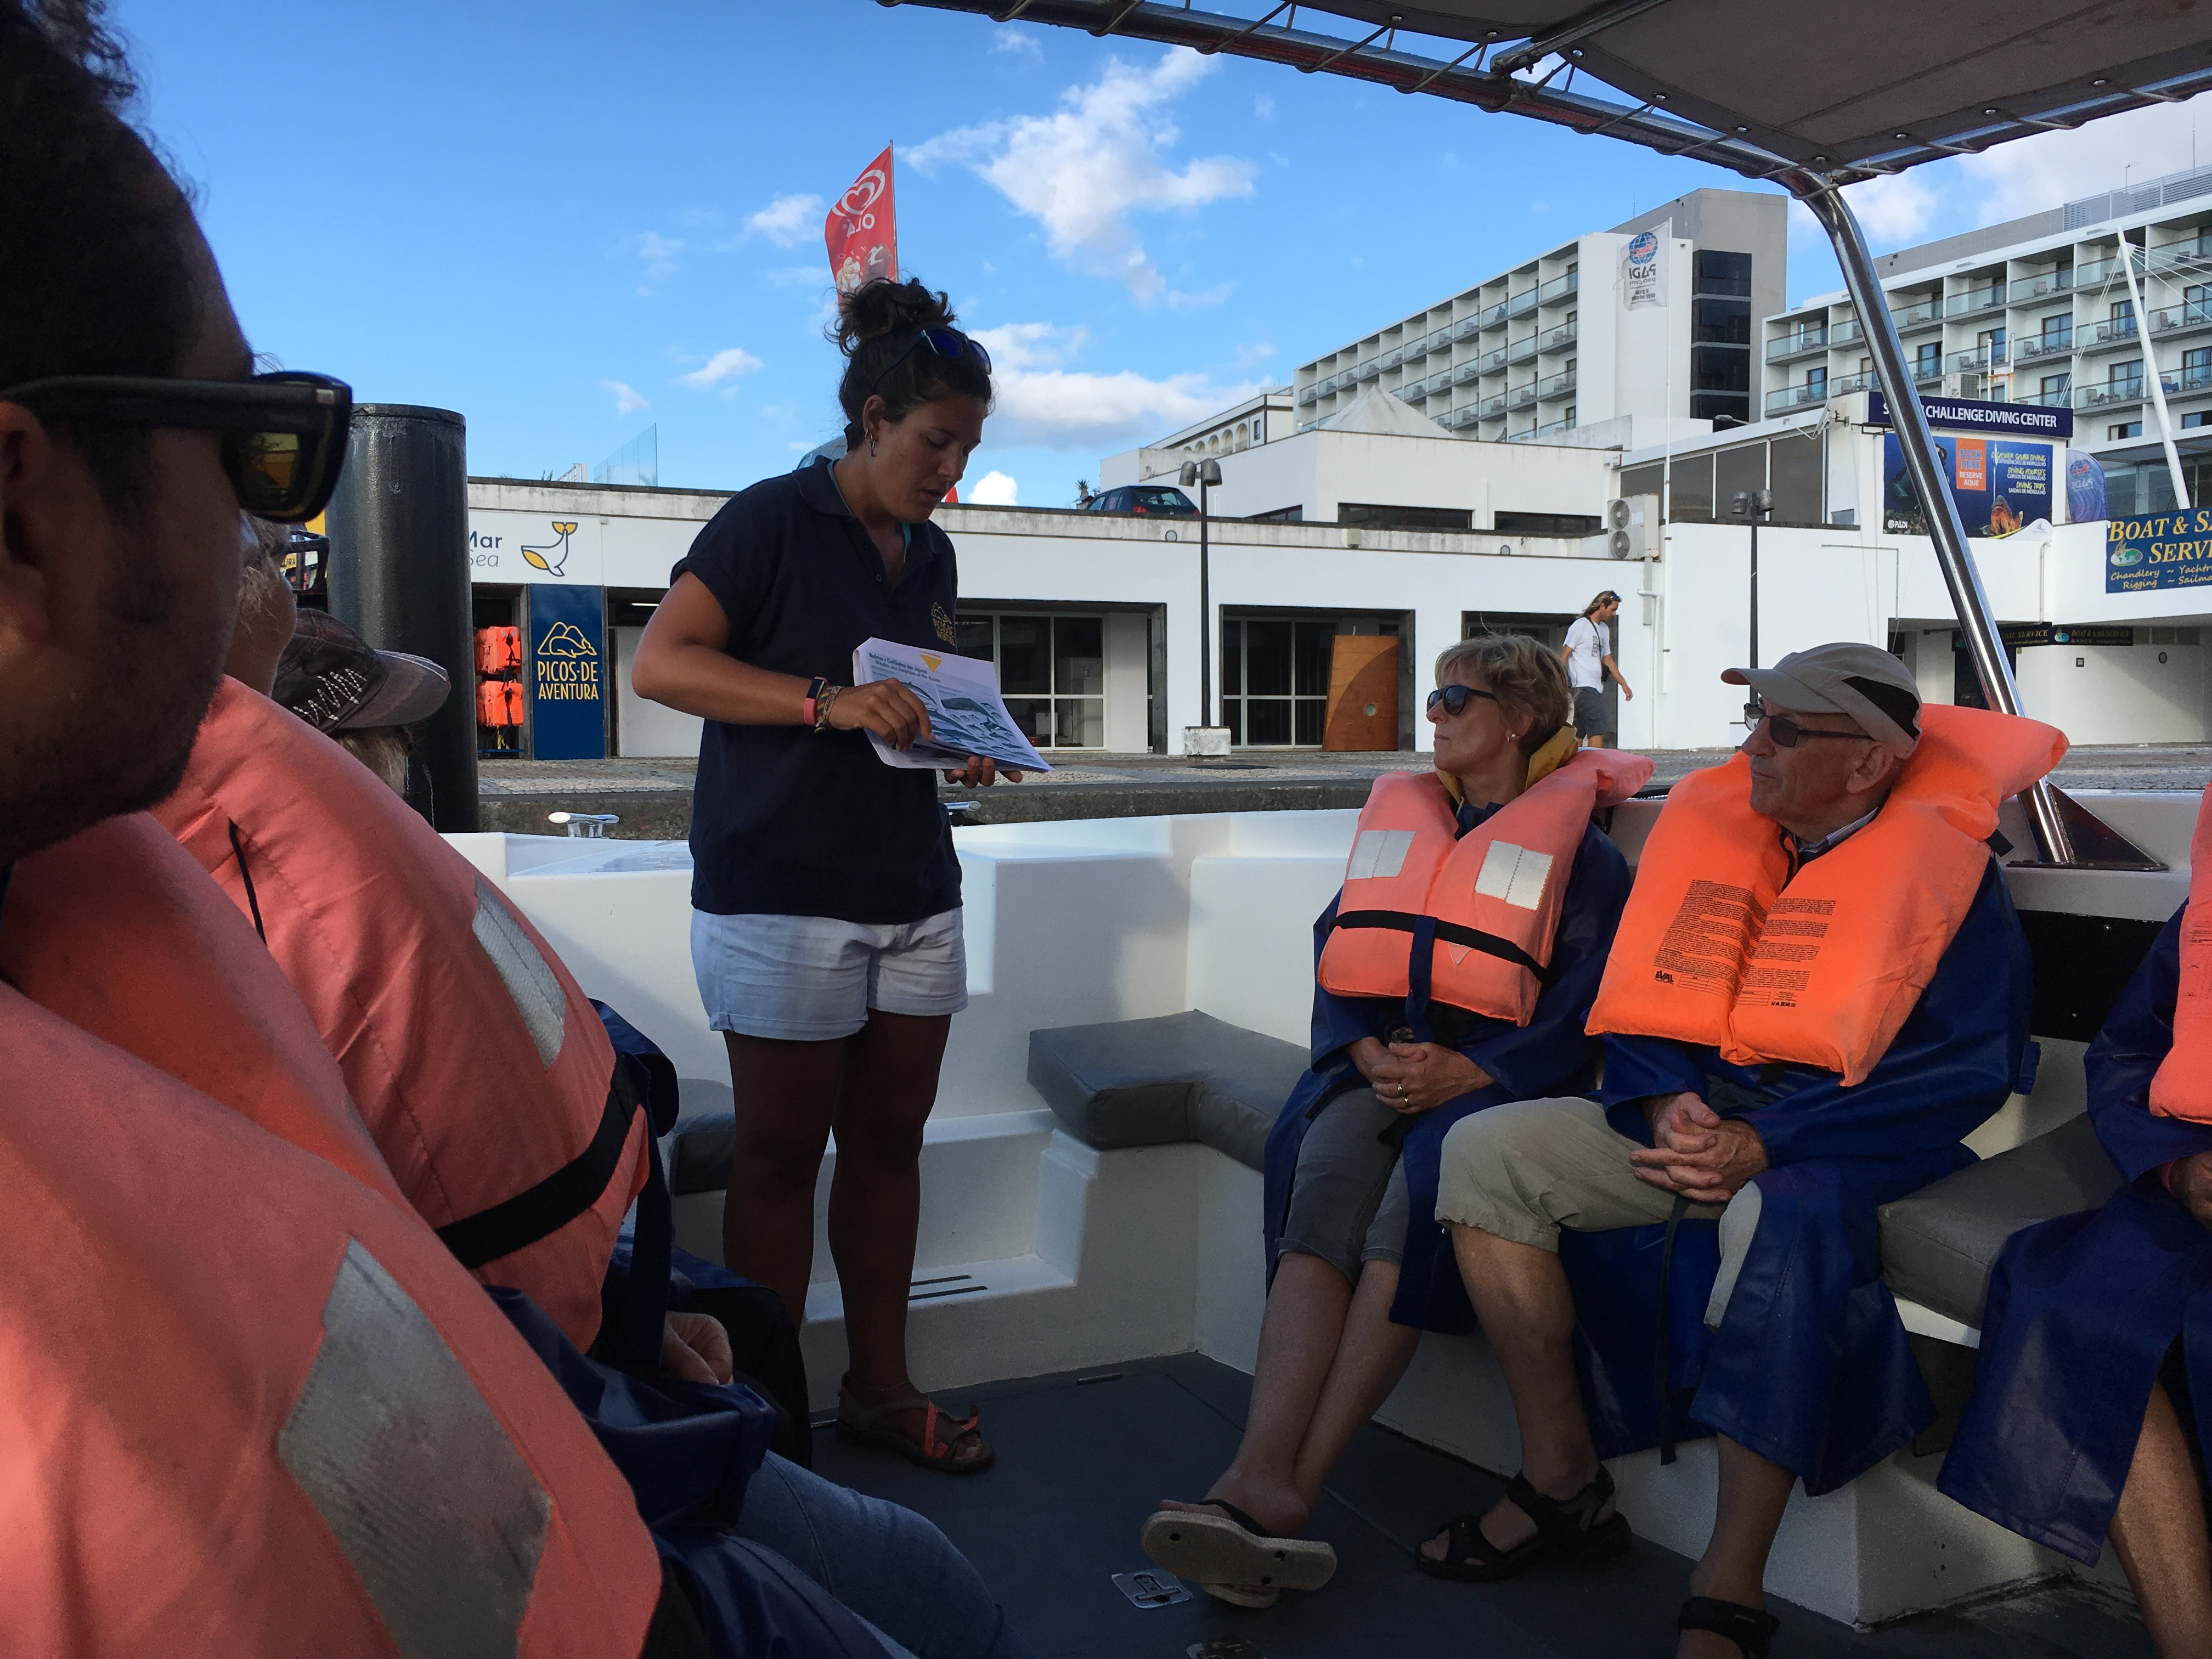 Picos de Aventura provides a briefing before the whale watching tour